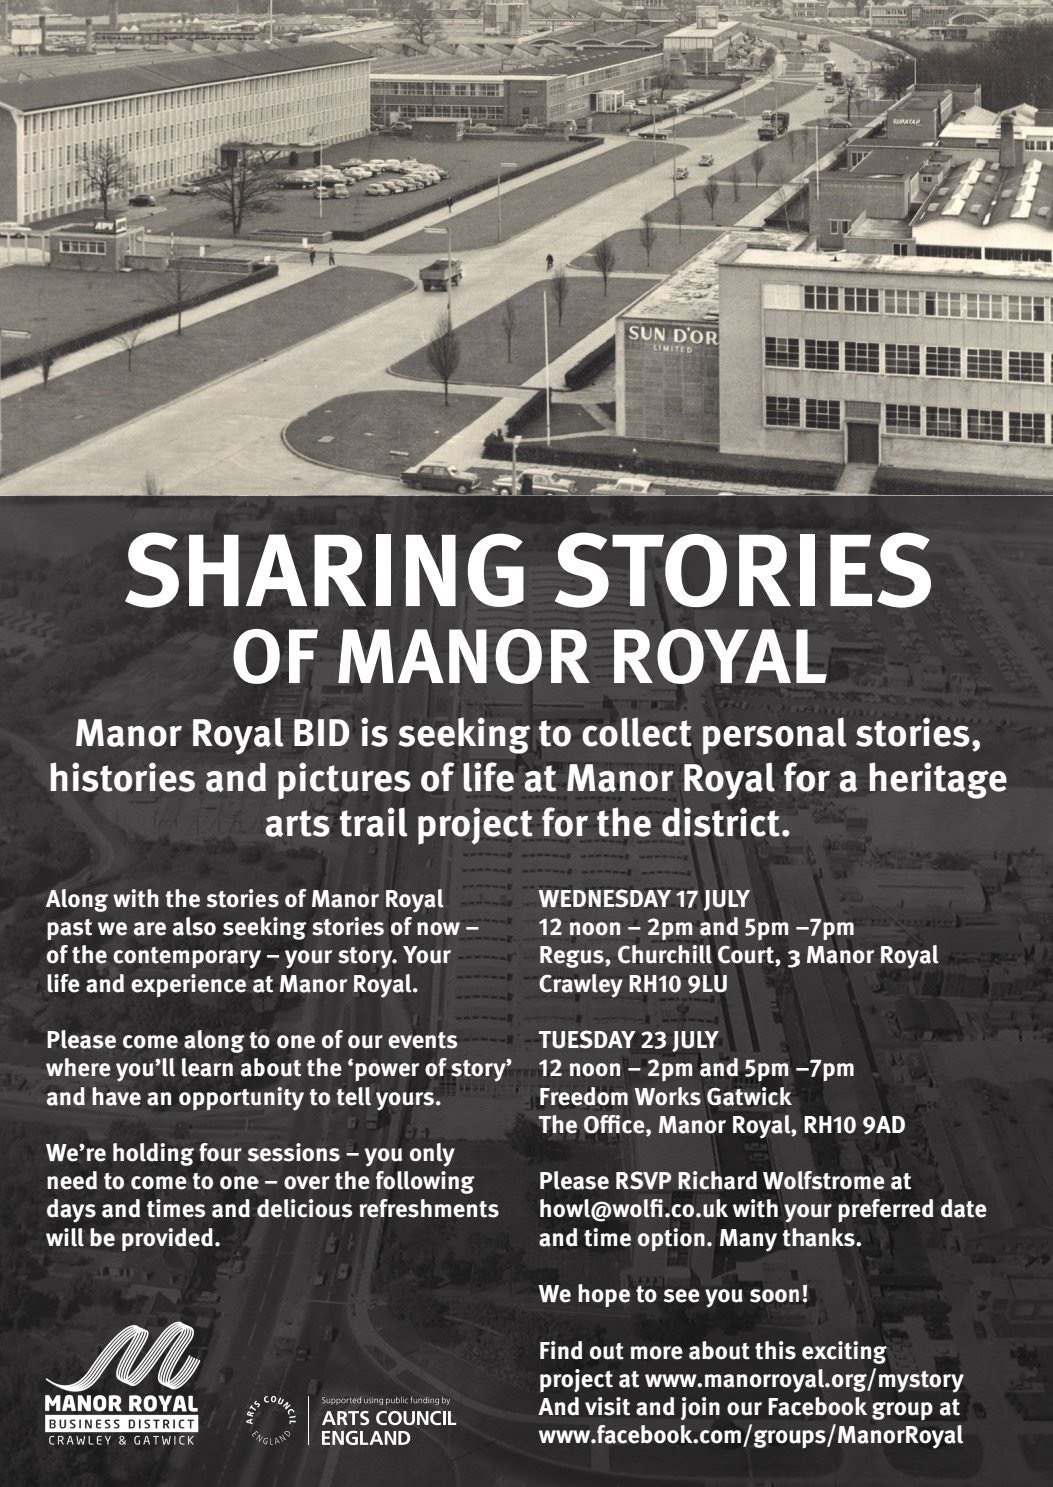 Sharing stories of Manor Royal